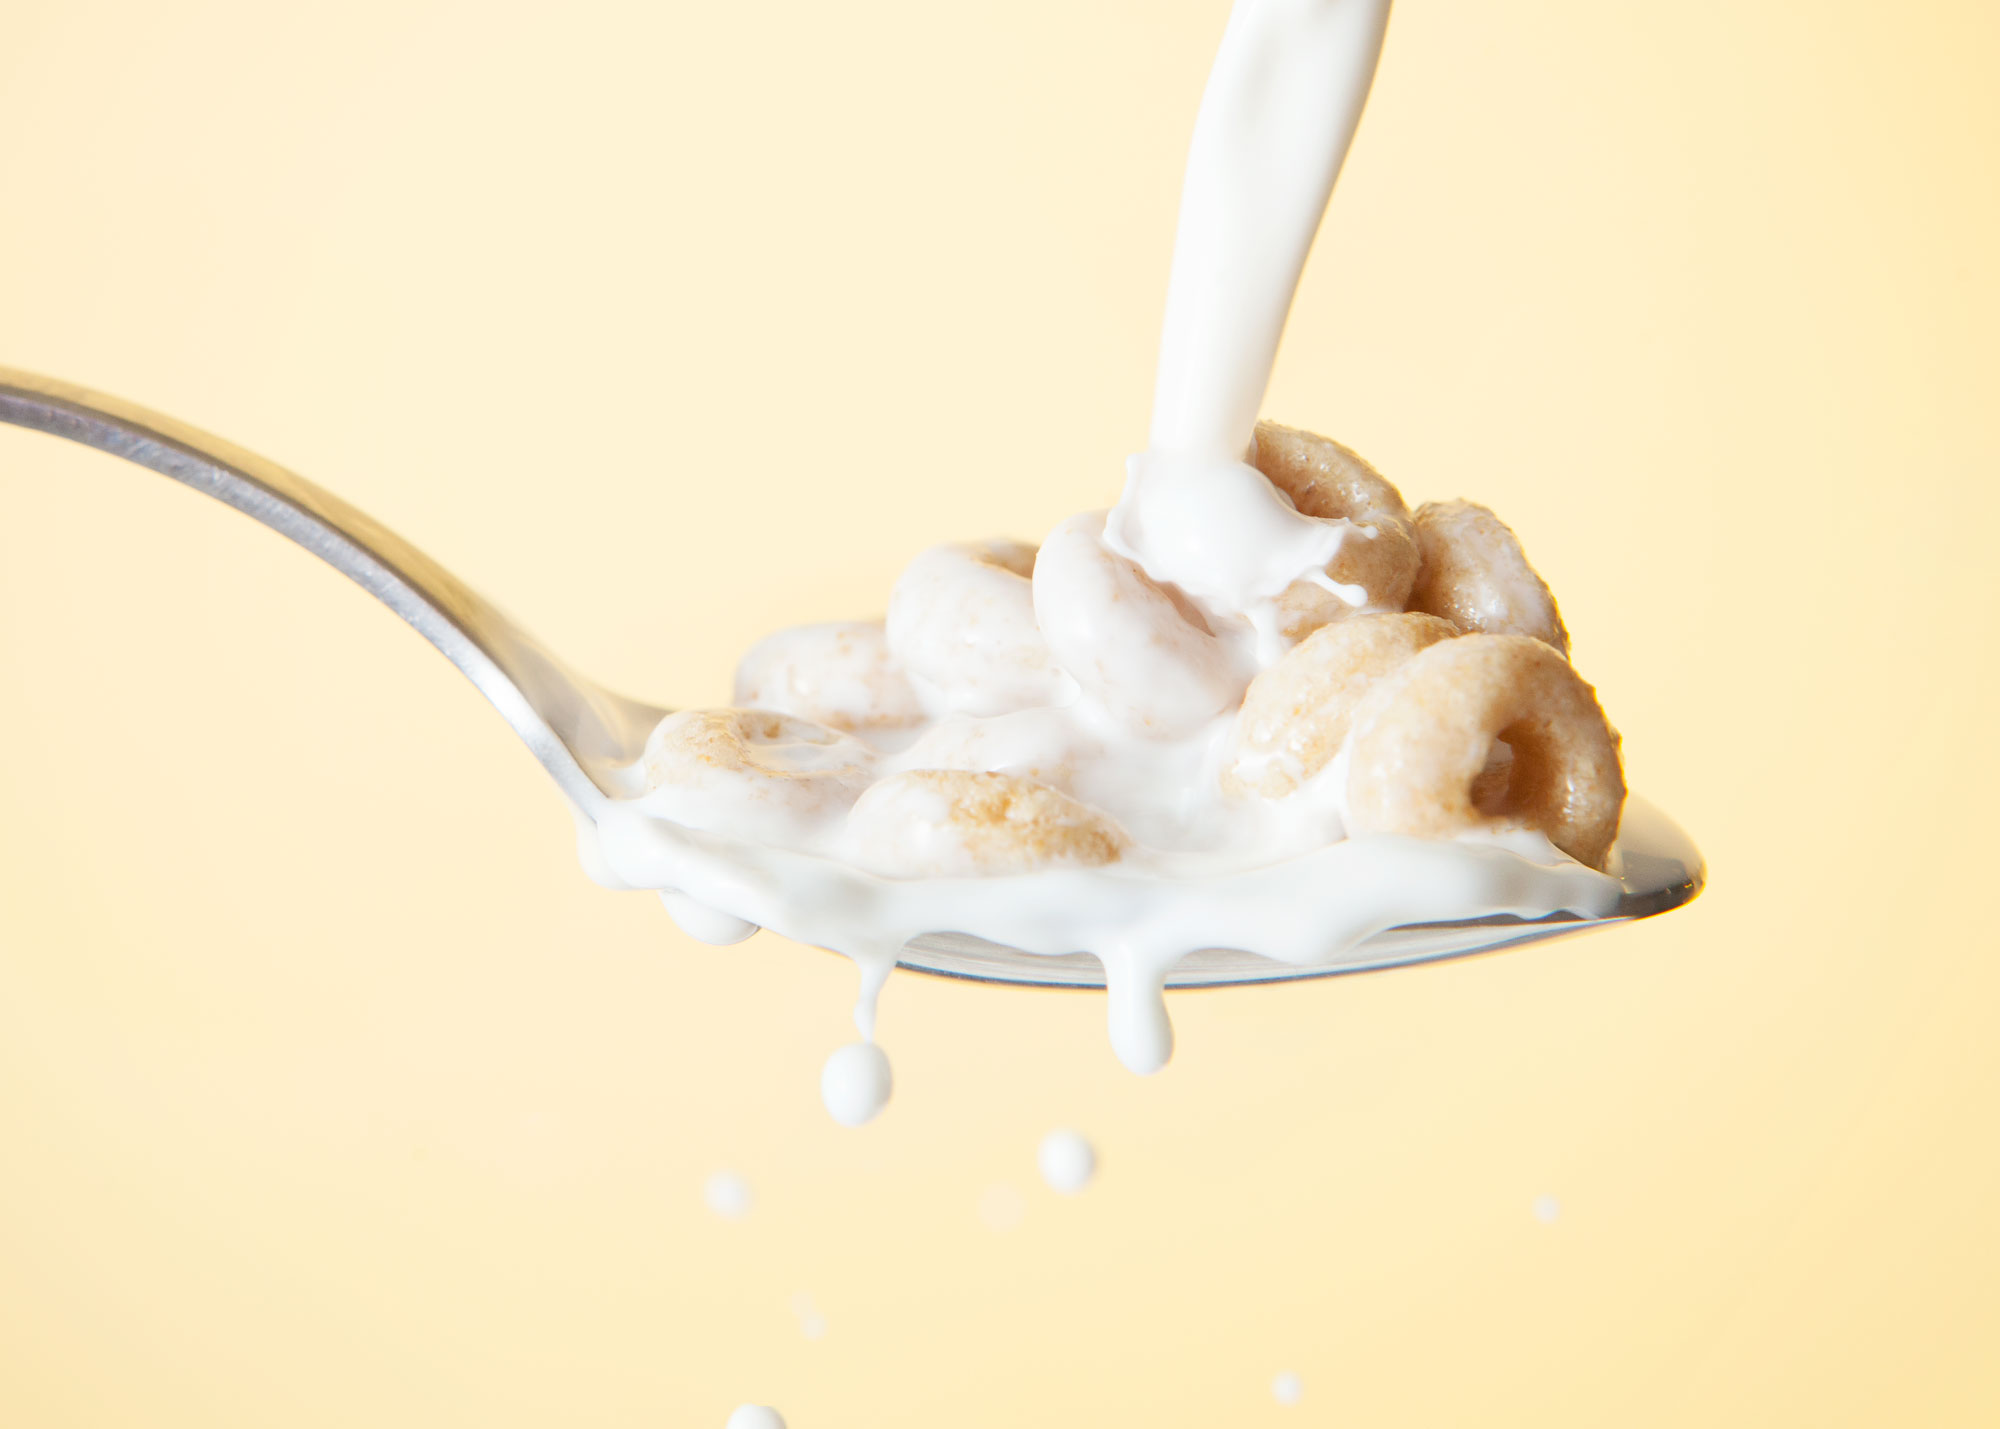 Product Photography II: Cereal On A Spoon by Alex Kay